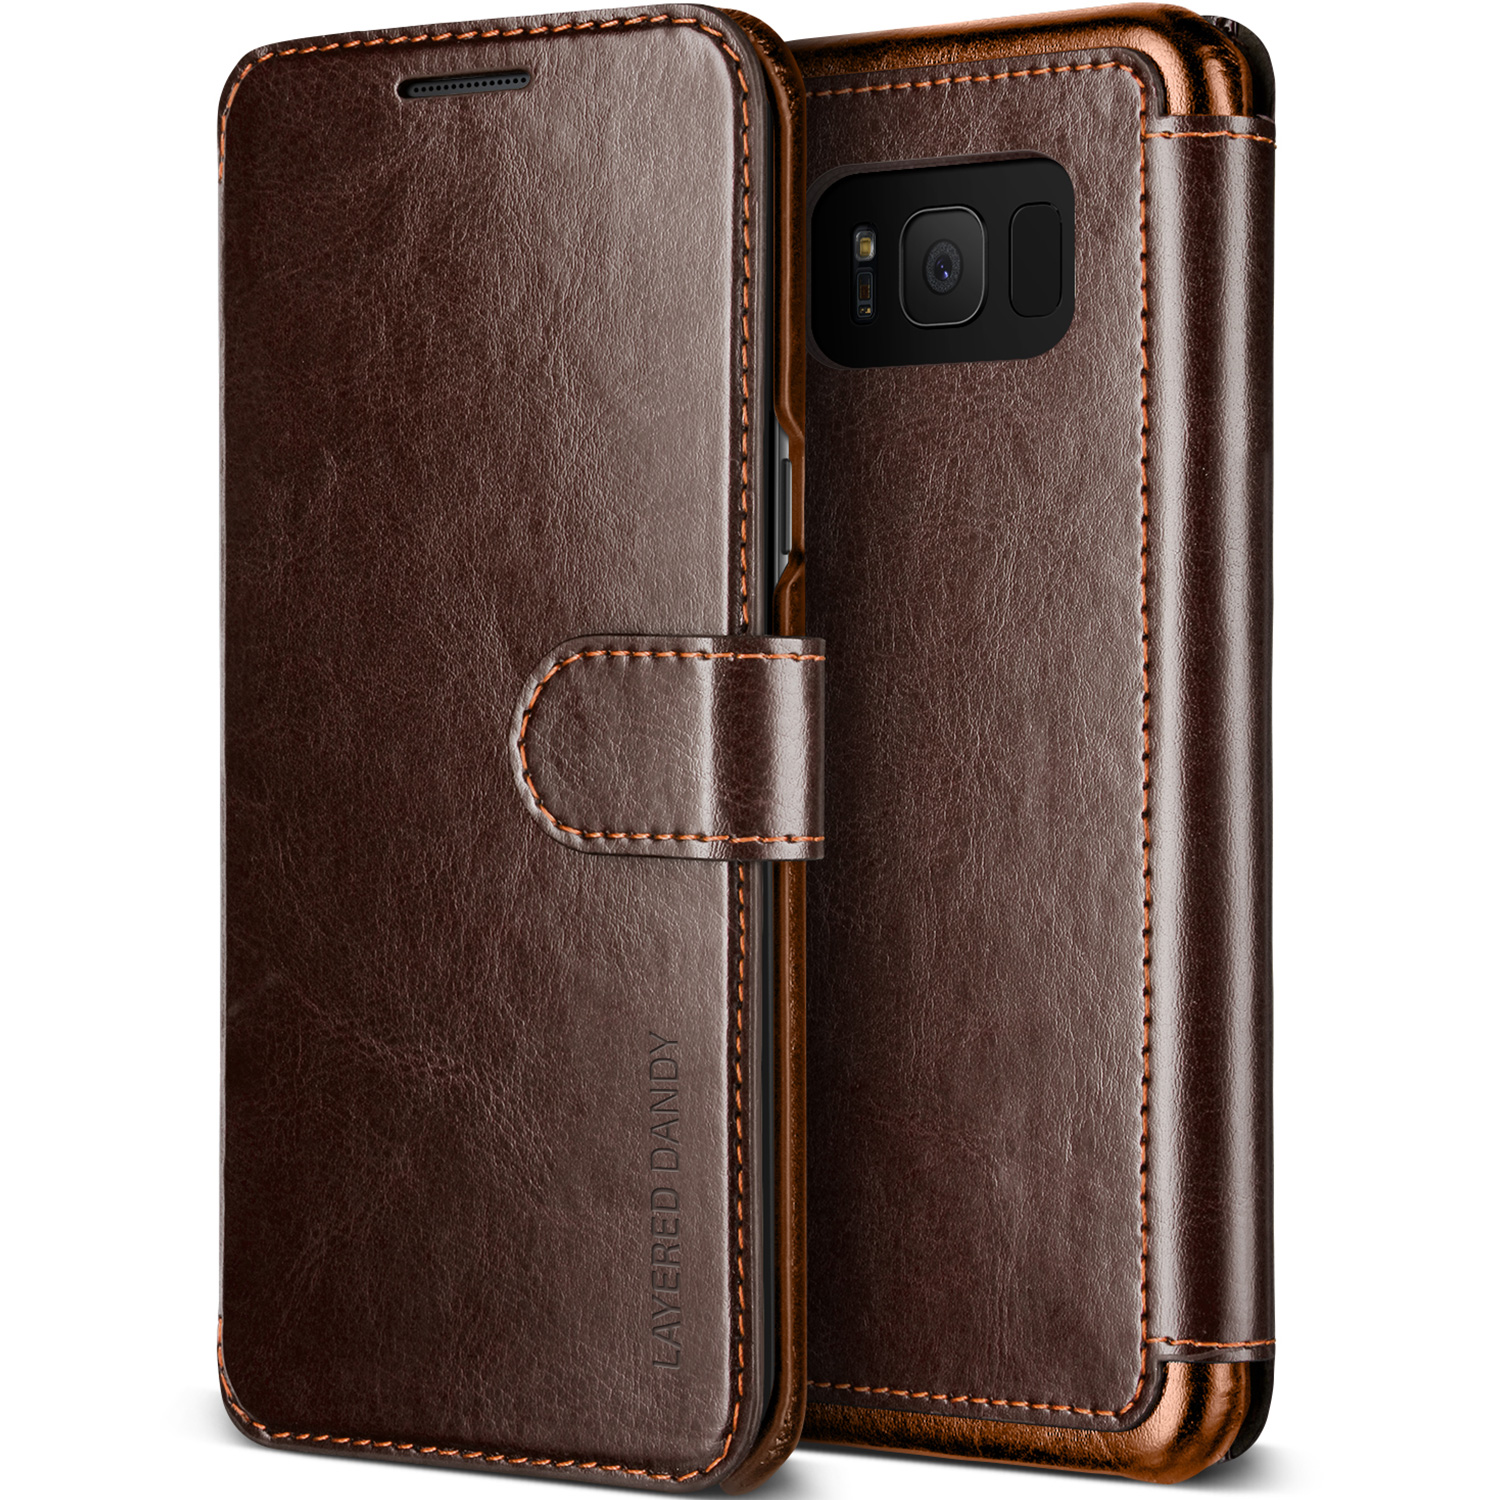 Samsung Galaxy S8 Case Cover | Premium PU Leather Wallet with Card Slots | VRS Design Layered Dandy for Samsung Galaxy S8